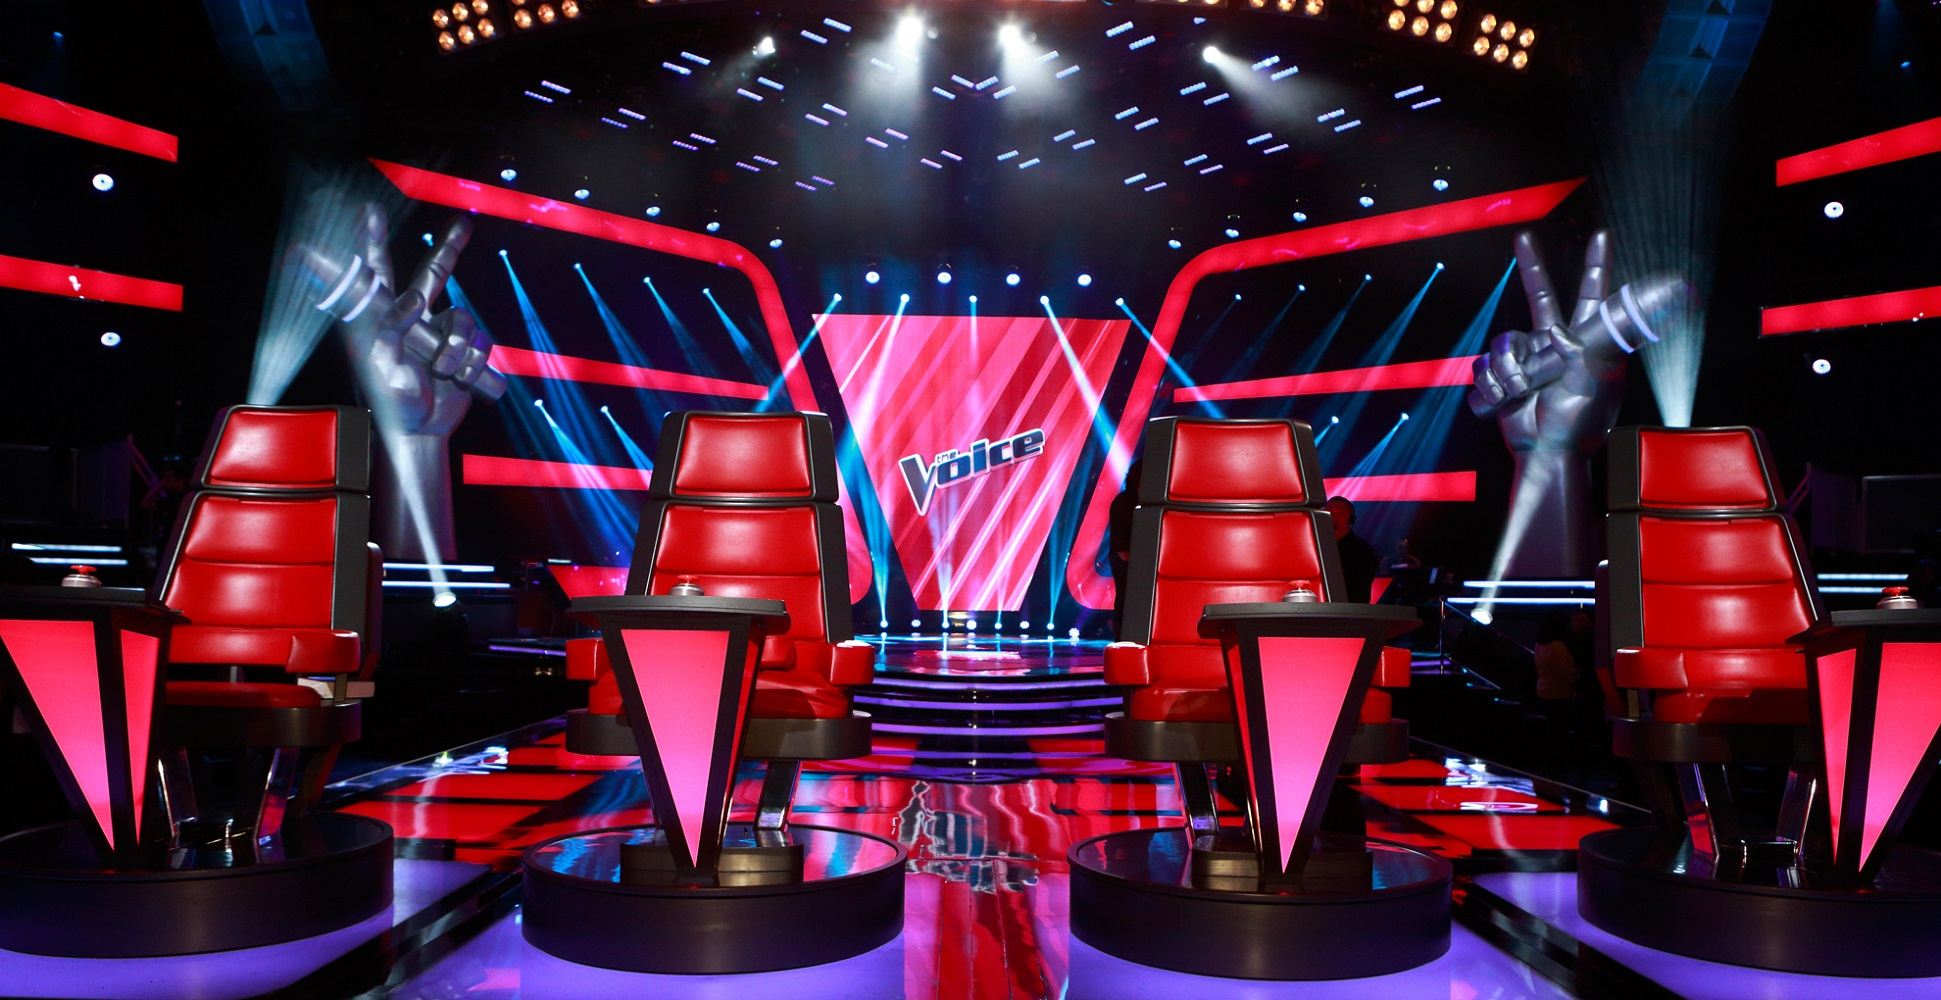 THE VOICE CHAIRS